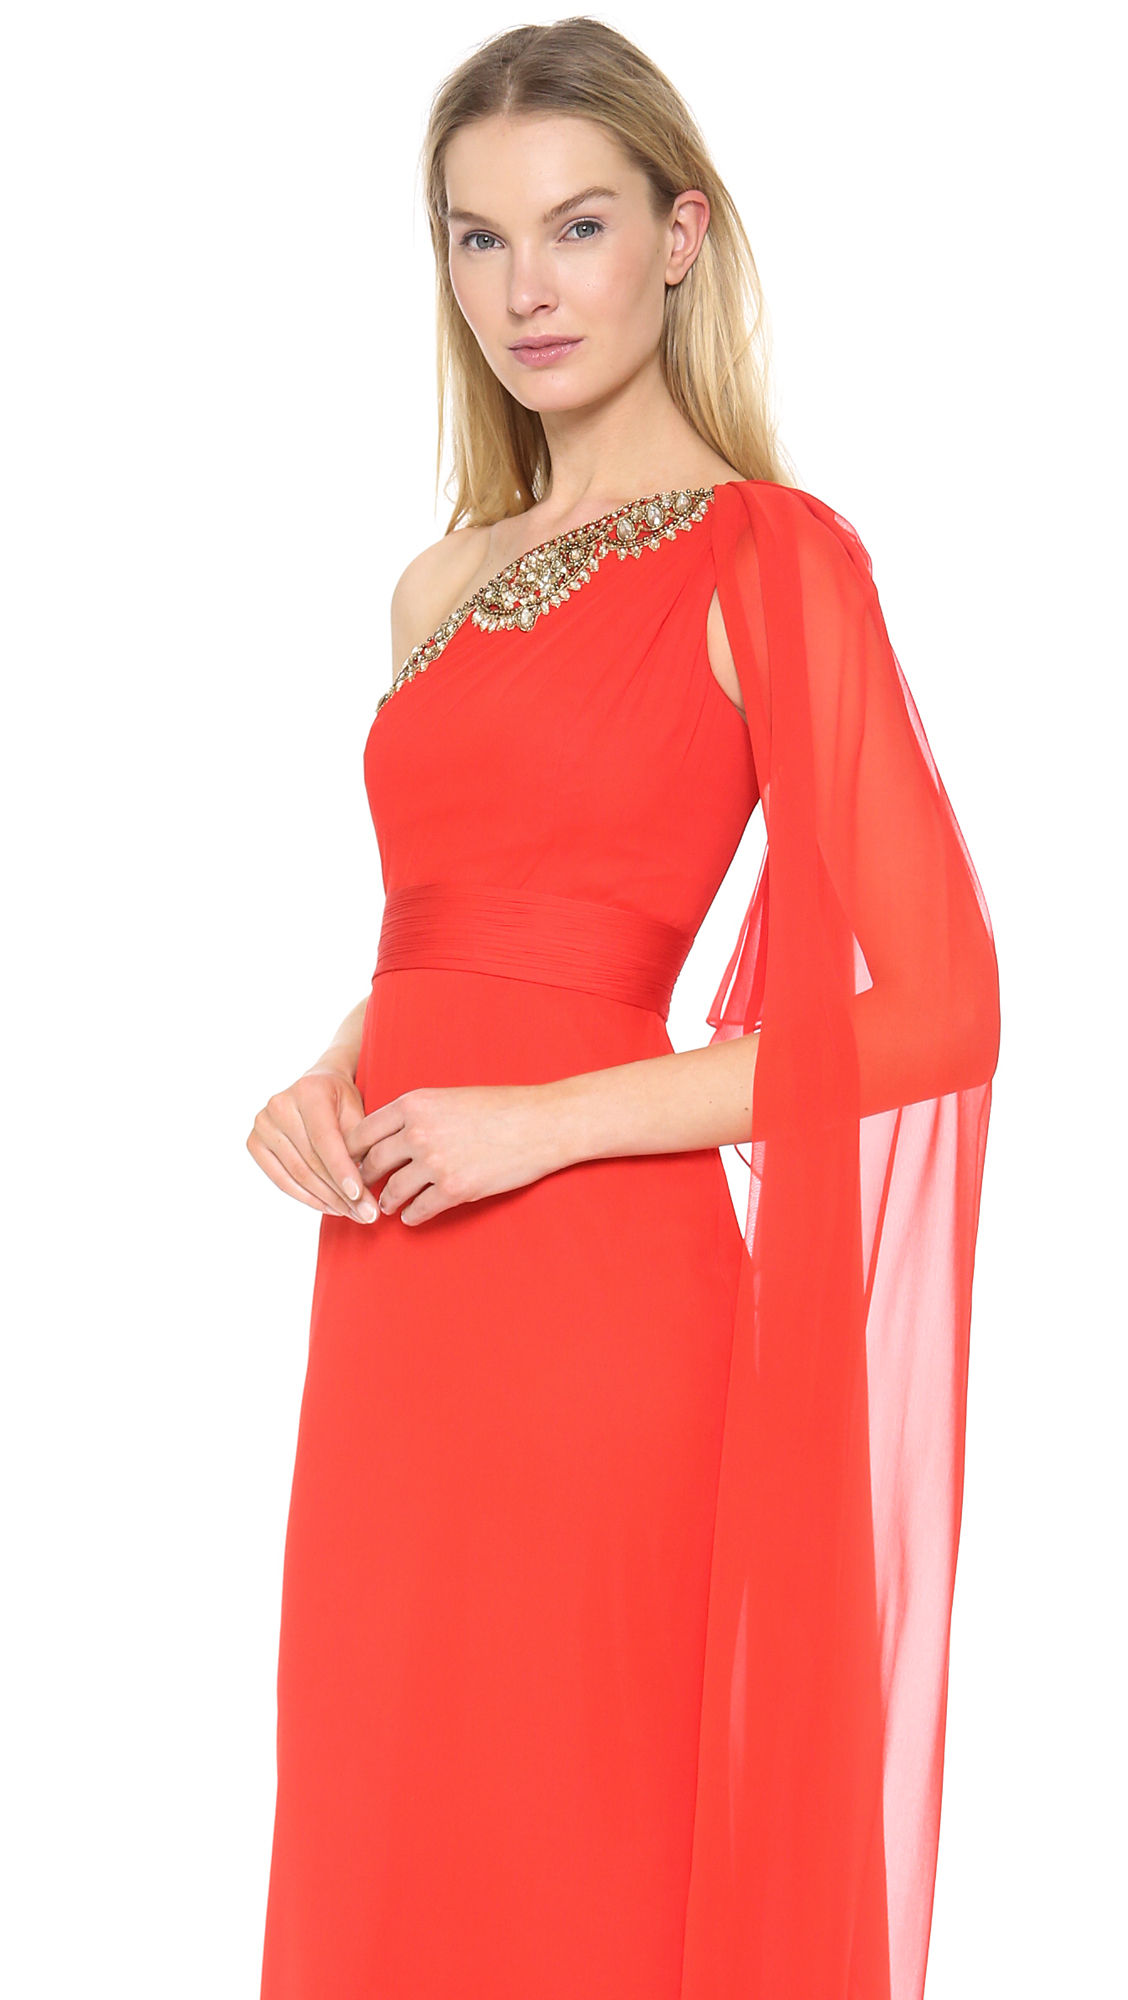 Images of poppy colored dresses